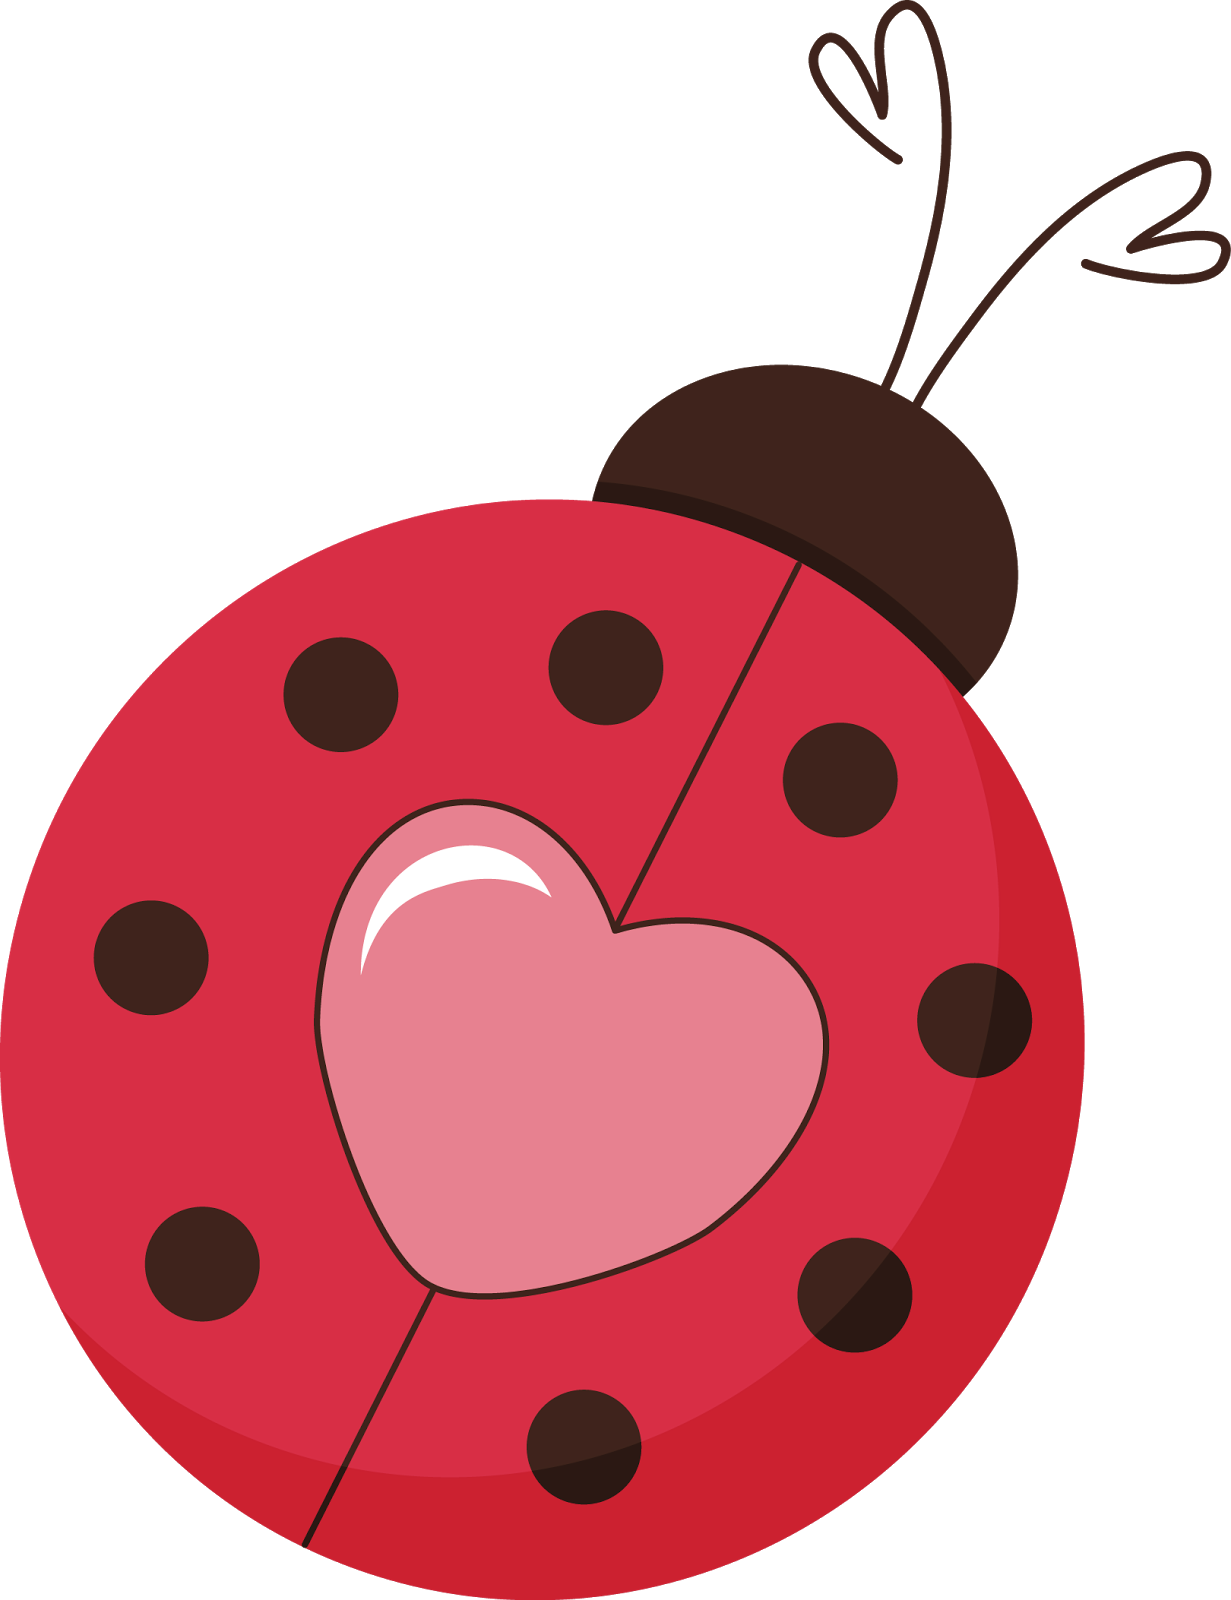 Cute clip art and graphics free clipart images